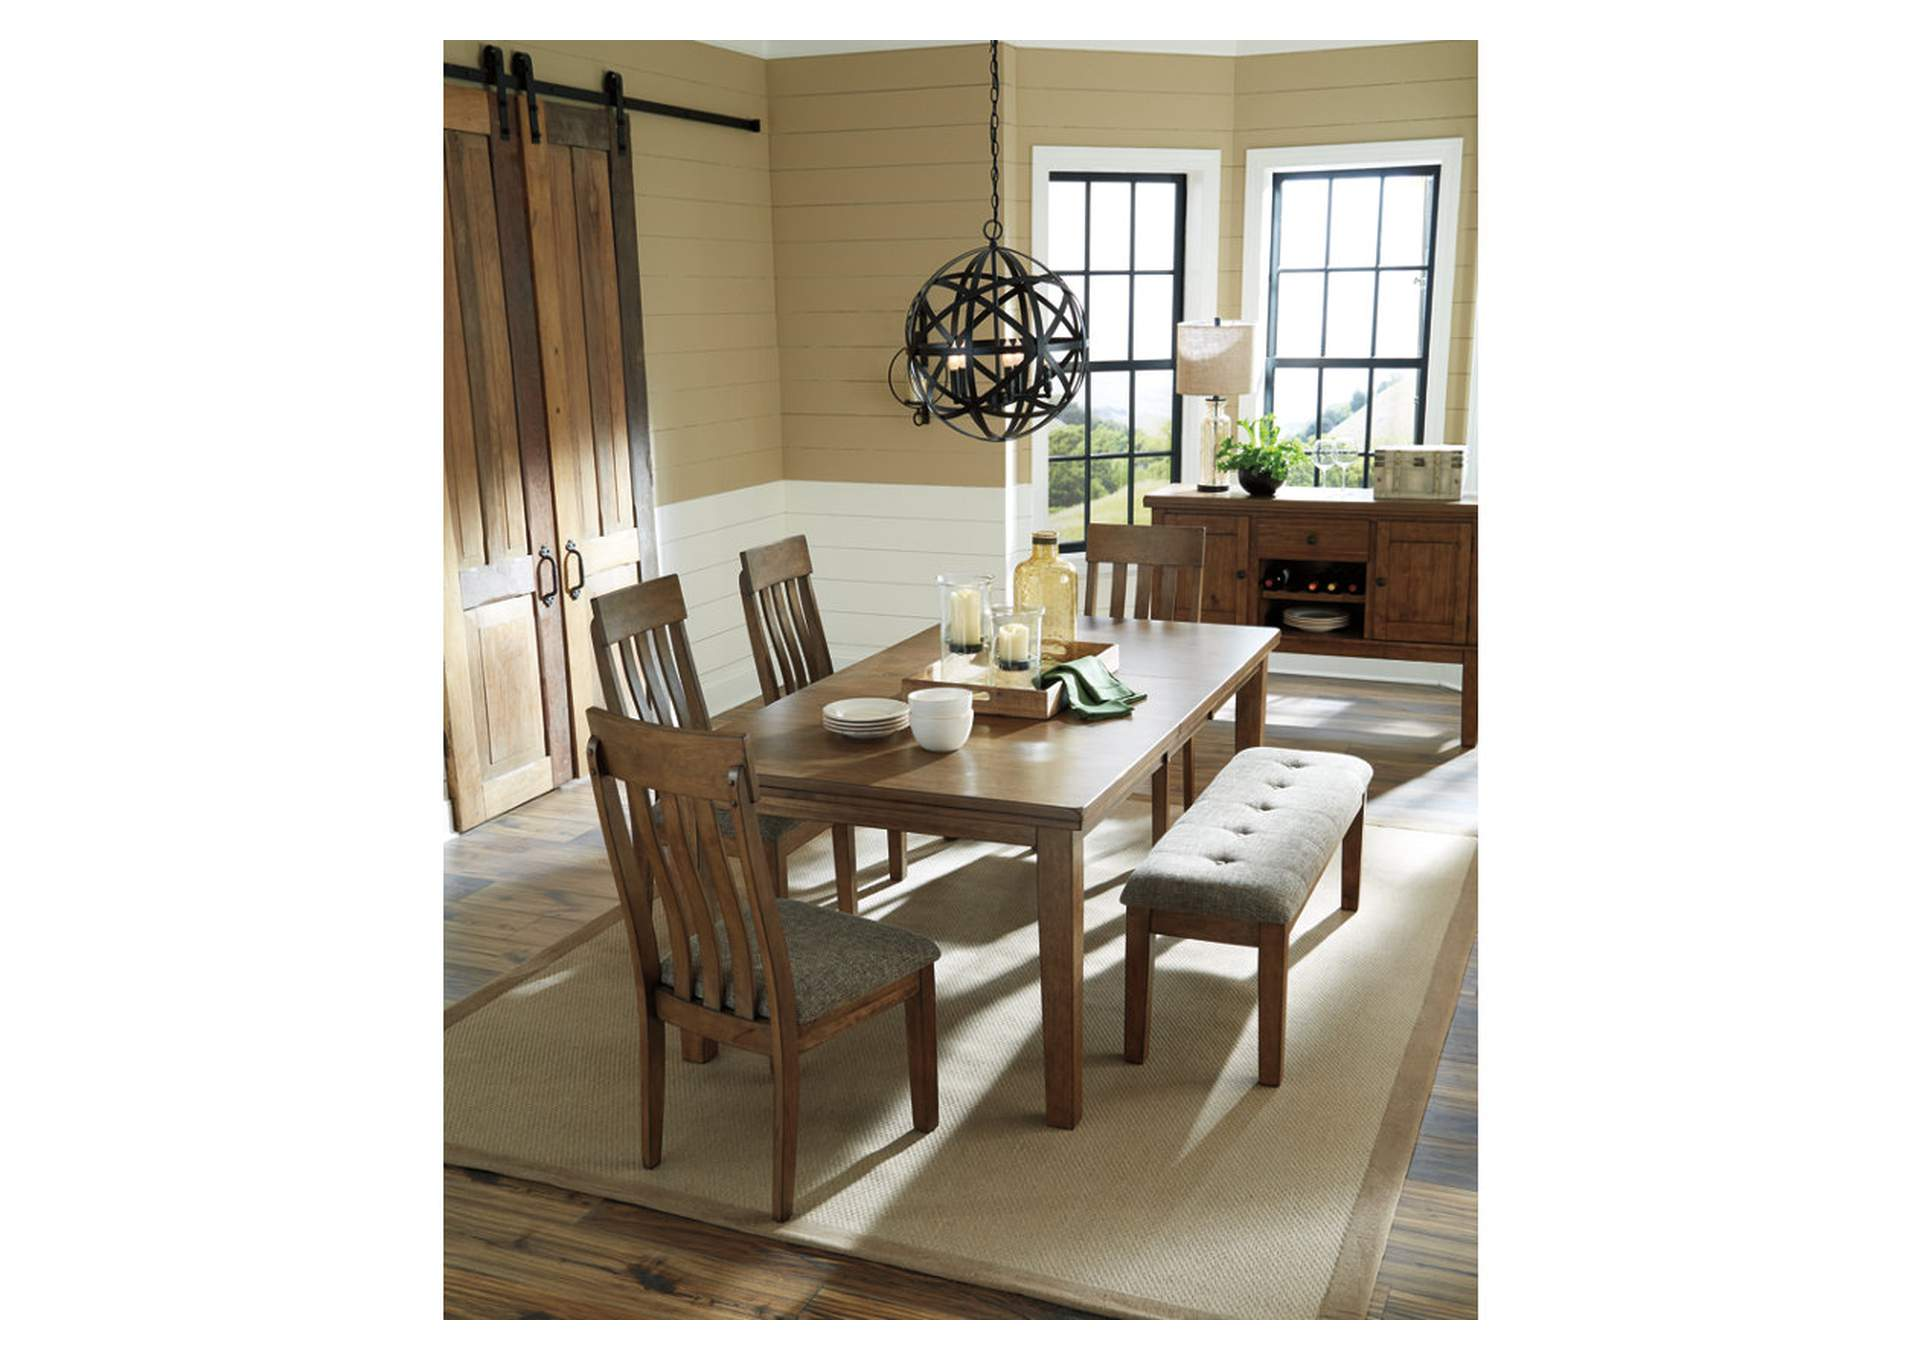 Flaybern Butterfly Extension Dining Table,Benchcraft